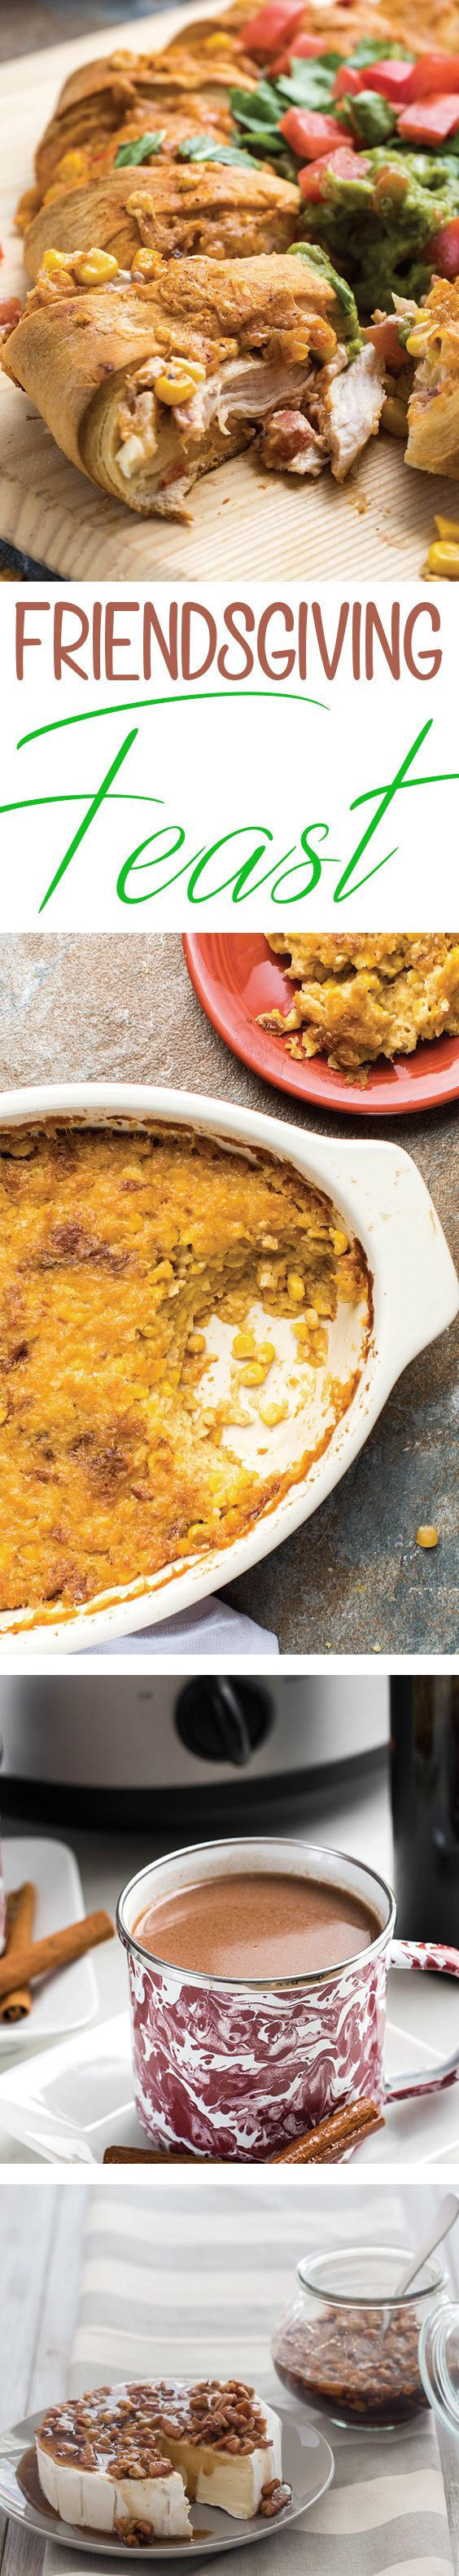 Host a Friendsgiving feast with these recipes for a Turkey Taco Crescent Ring, Chipotle Corn Pudding, Pecan Pie Brie and Slow Cooker Red Wine Hot Chocolate from McCormick Spice. #thanksgiving #friendsgiving #fall #holidays #turkey #taco #recipe #food #pecanpie #pie #brie #cornpudding #thanksgivingside #slowcooker #wine #hotchocolate